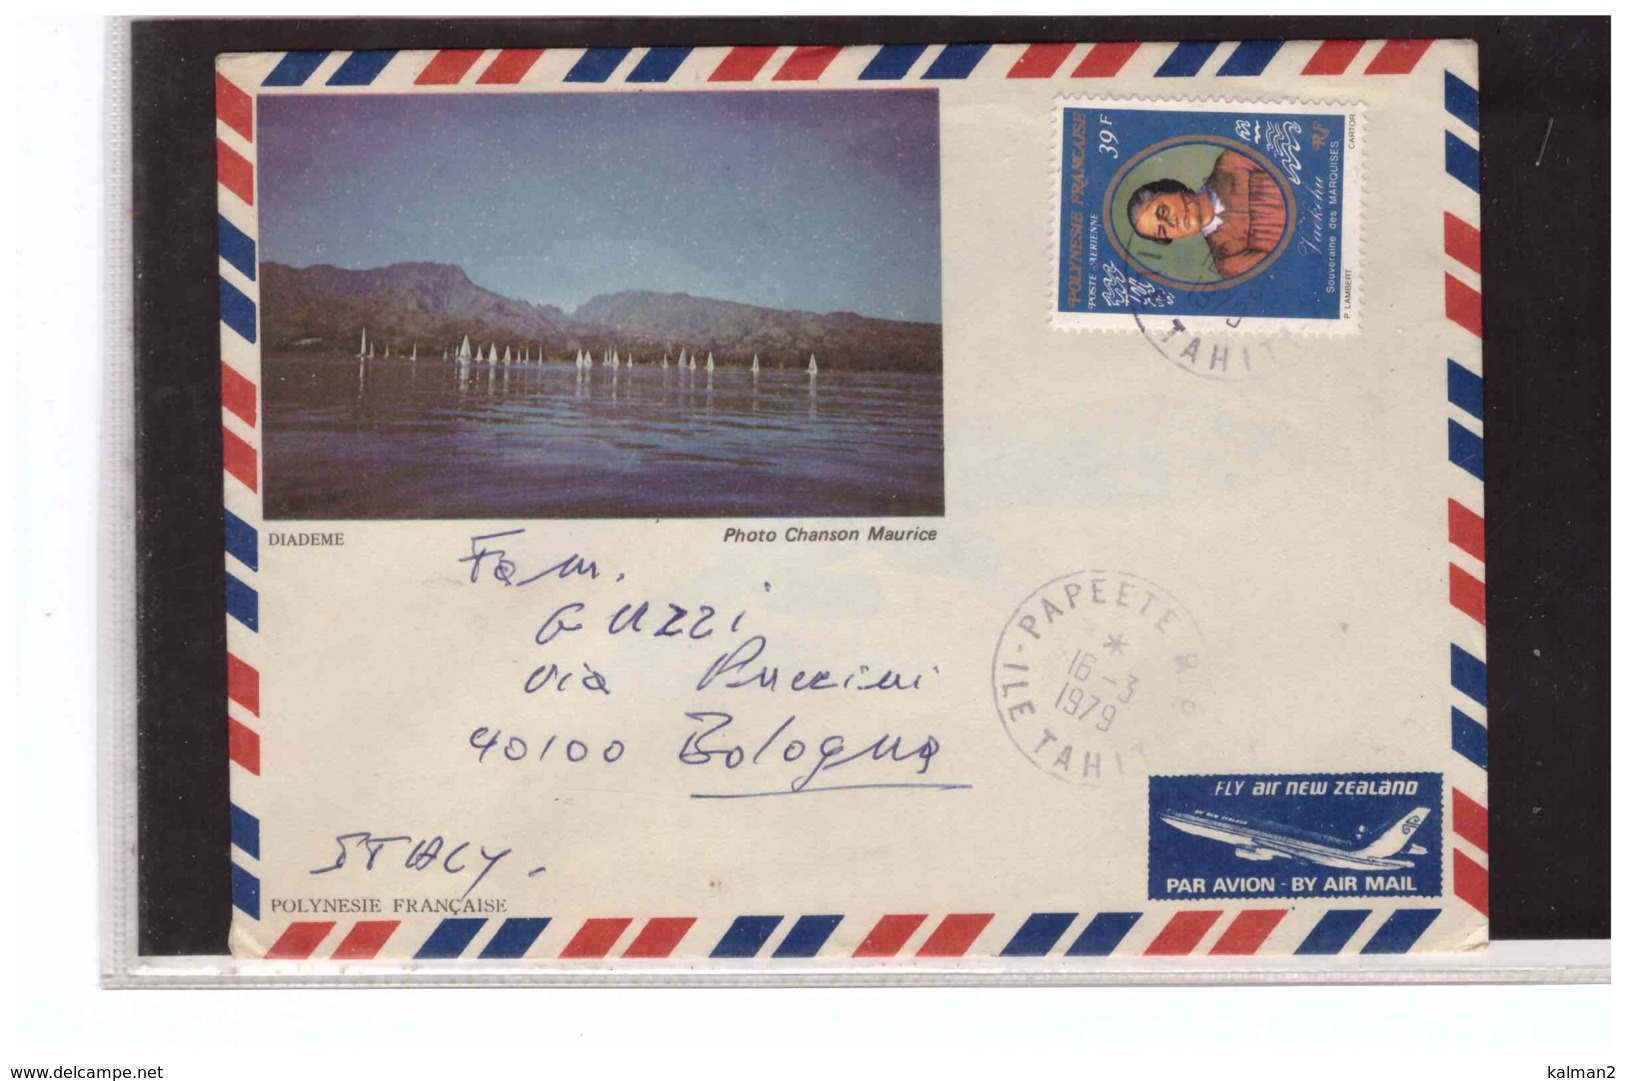 TEM6201   -   POLINESIA FRANCESE STORIA POSTALE    /   AIR MAIL LETTER   PAPEETE  16.3.1979 - Polinesia Francese